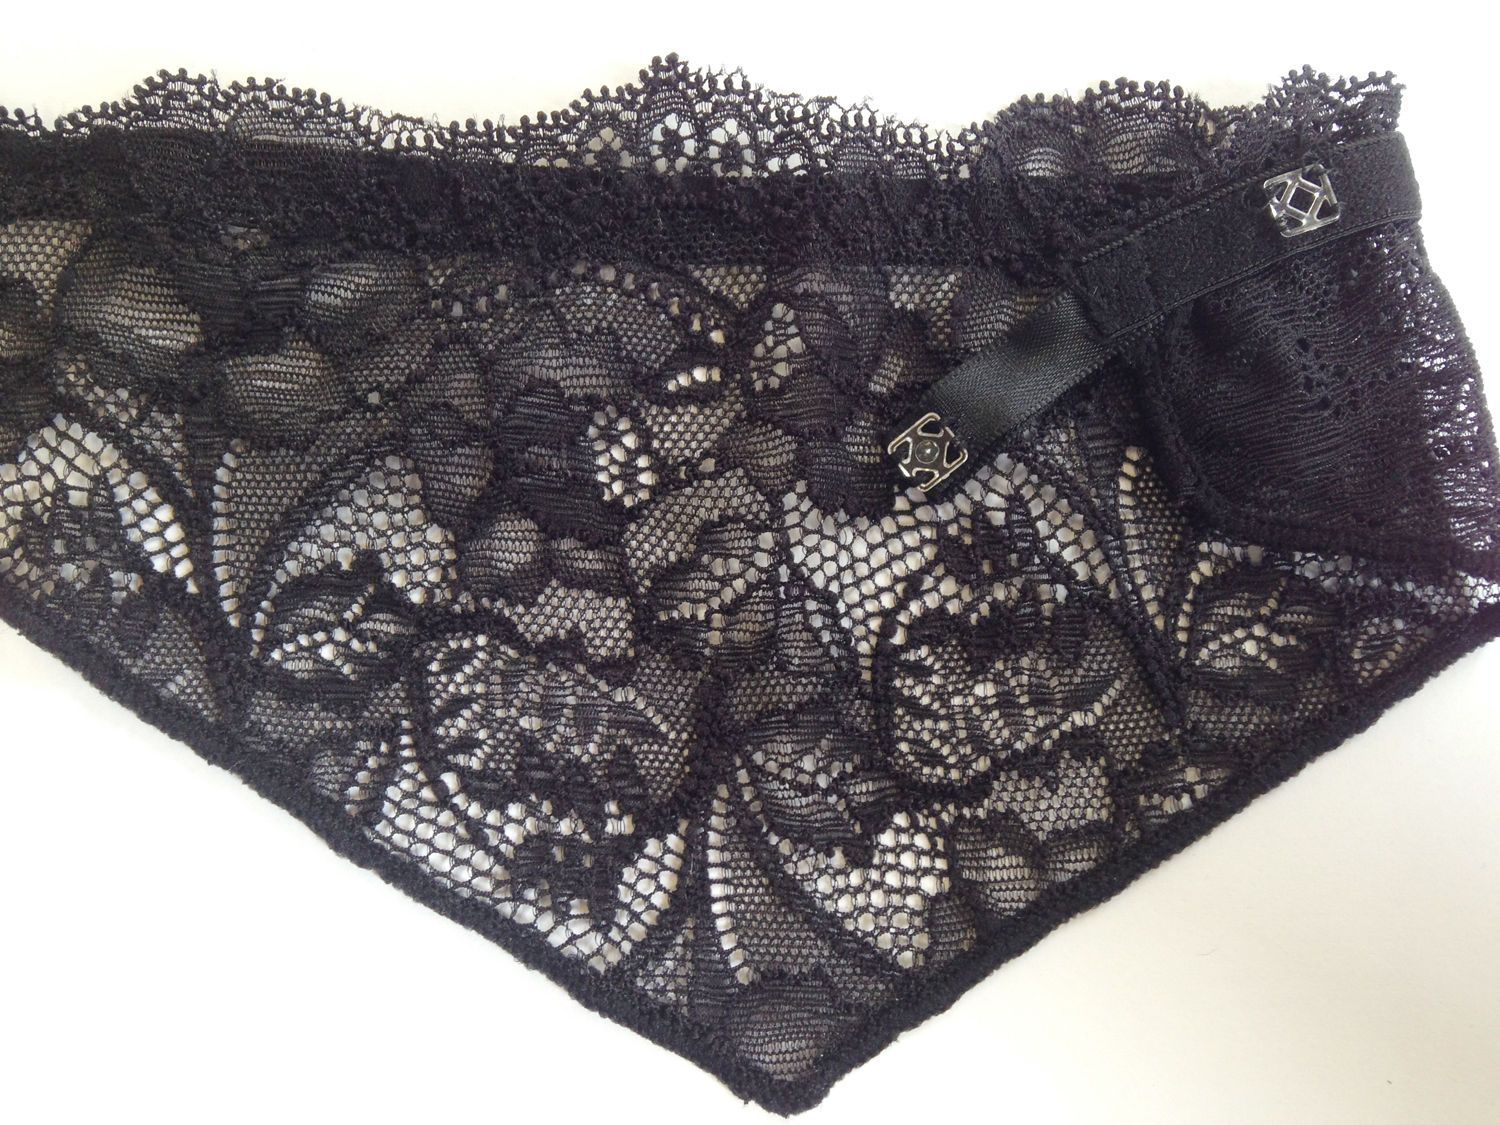 6a659dd82a92f Chest Cover Up - Lace Bra Insert - Modesty Panel - Instant Camisole - BLACK  Lace